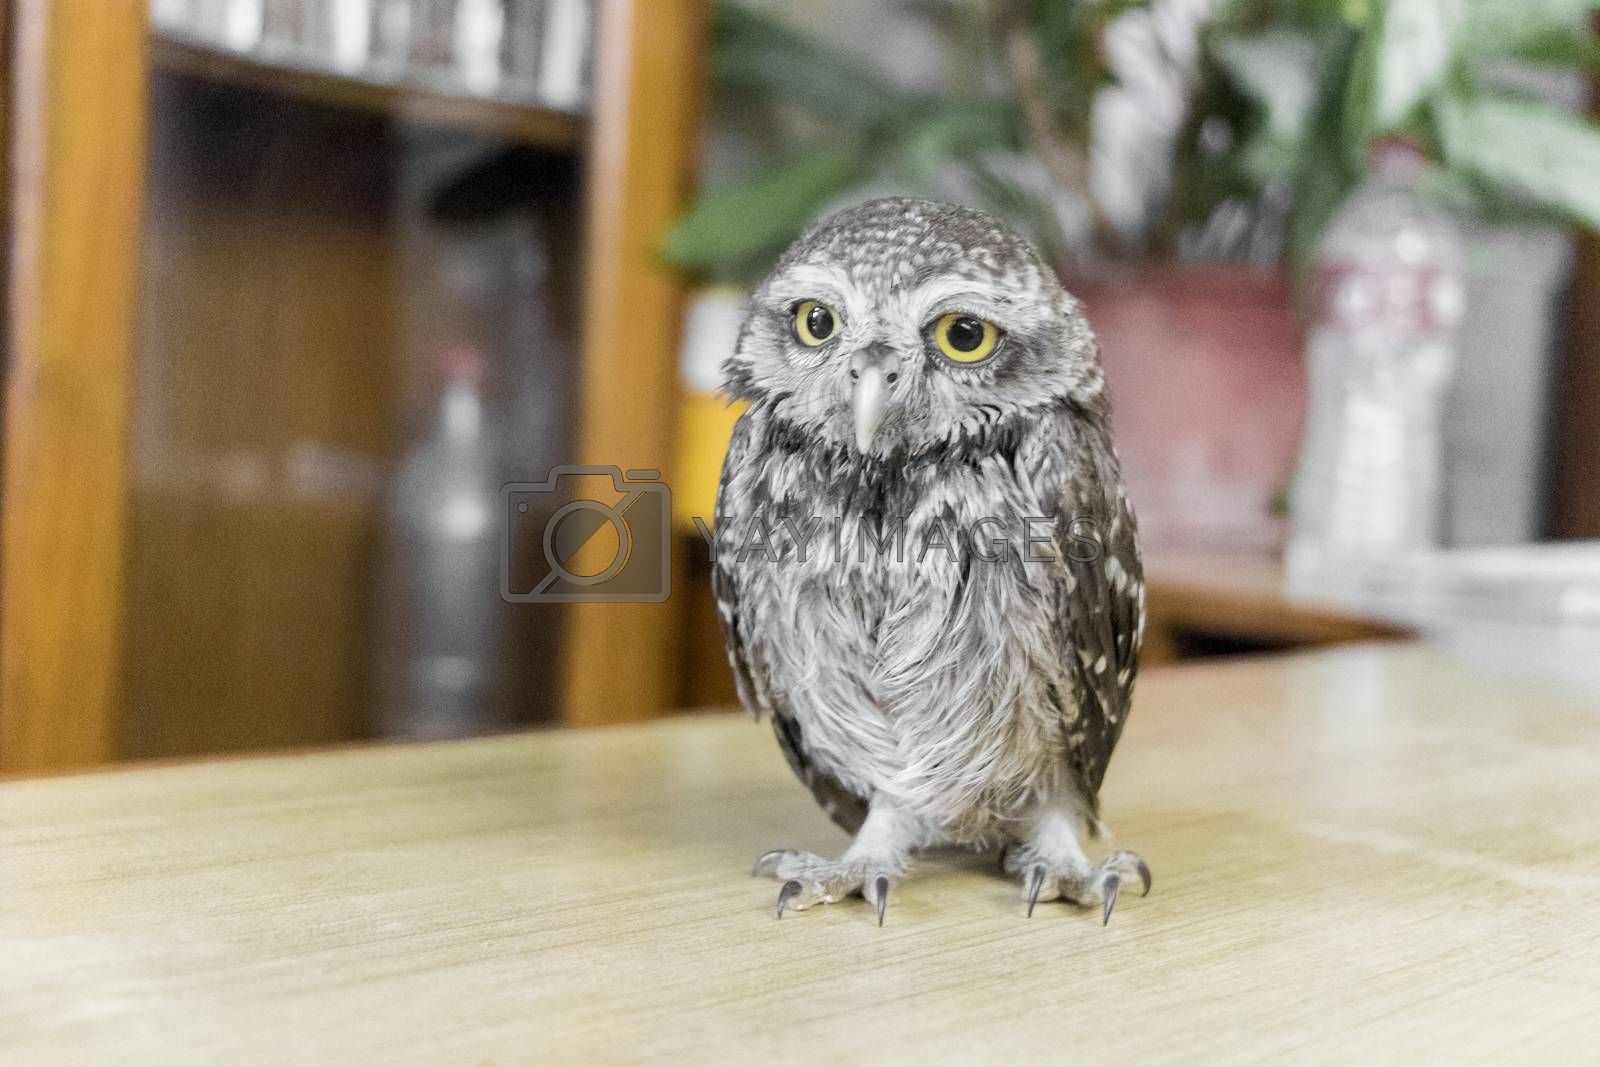 Rare and cute owl baby with big yellow eyes from Pokhara in Nepal.